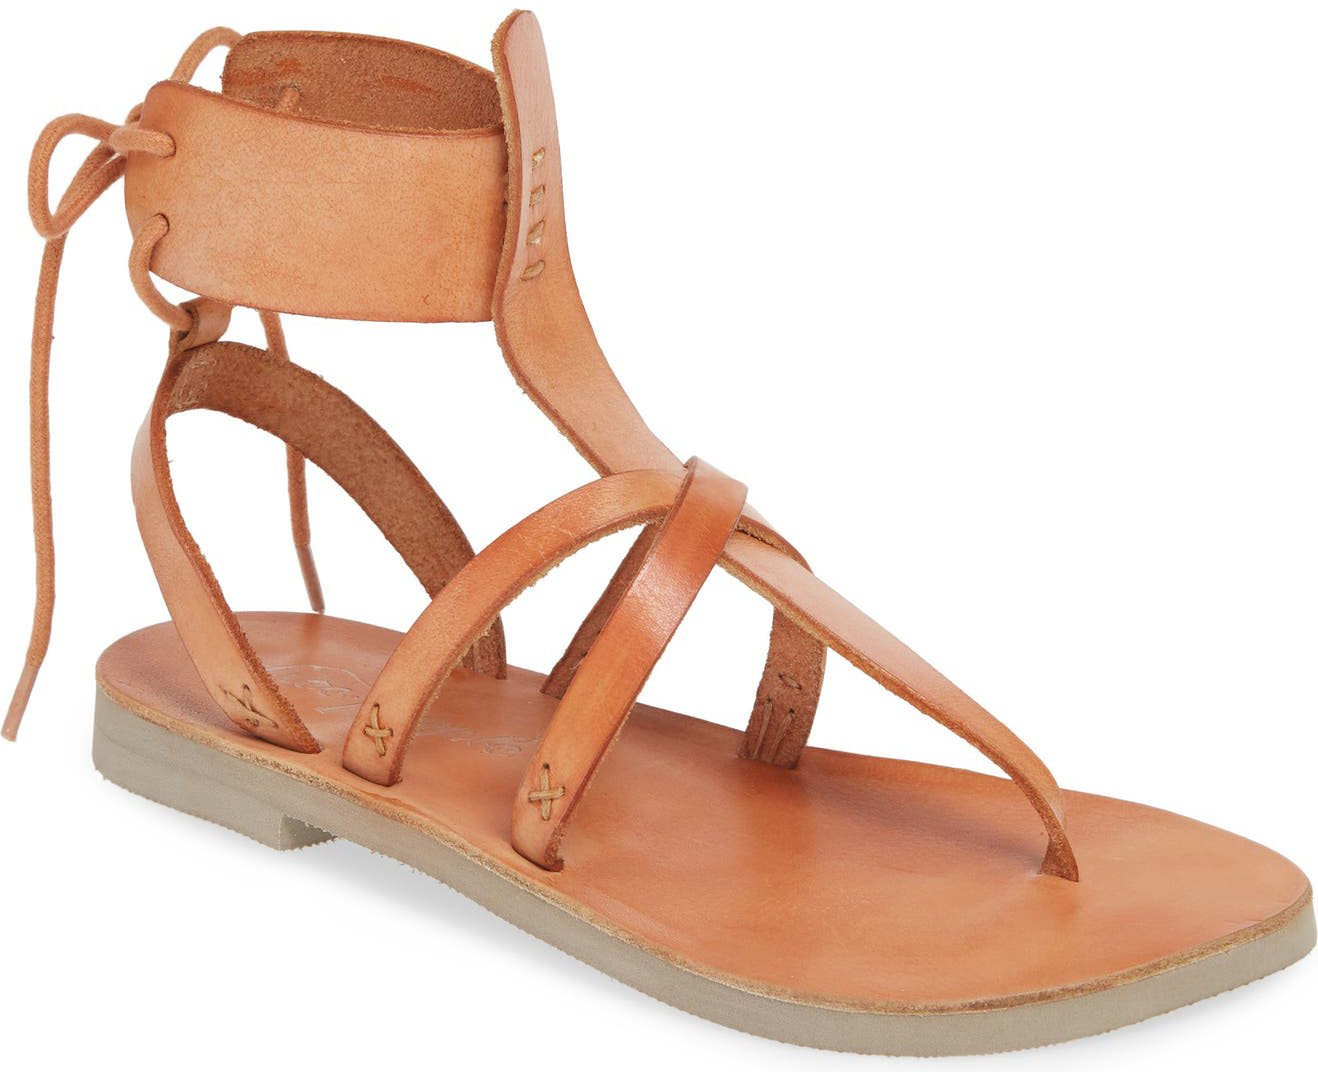 You'll never go wrong with a pair of strappy flat sandals for a comfy and chic summer look